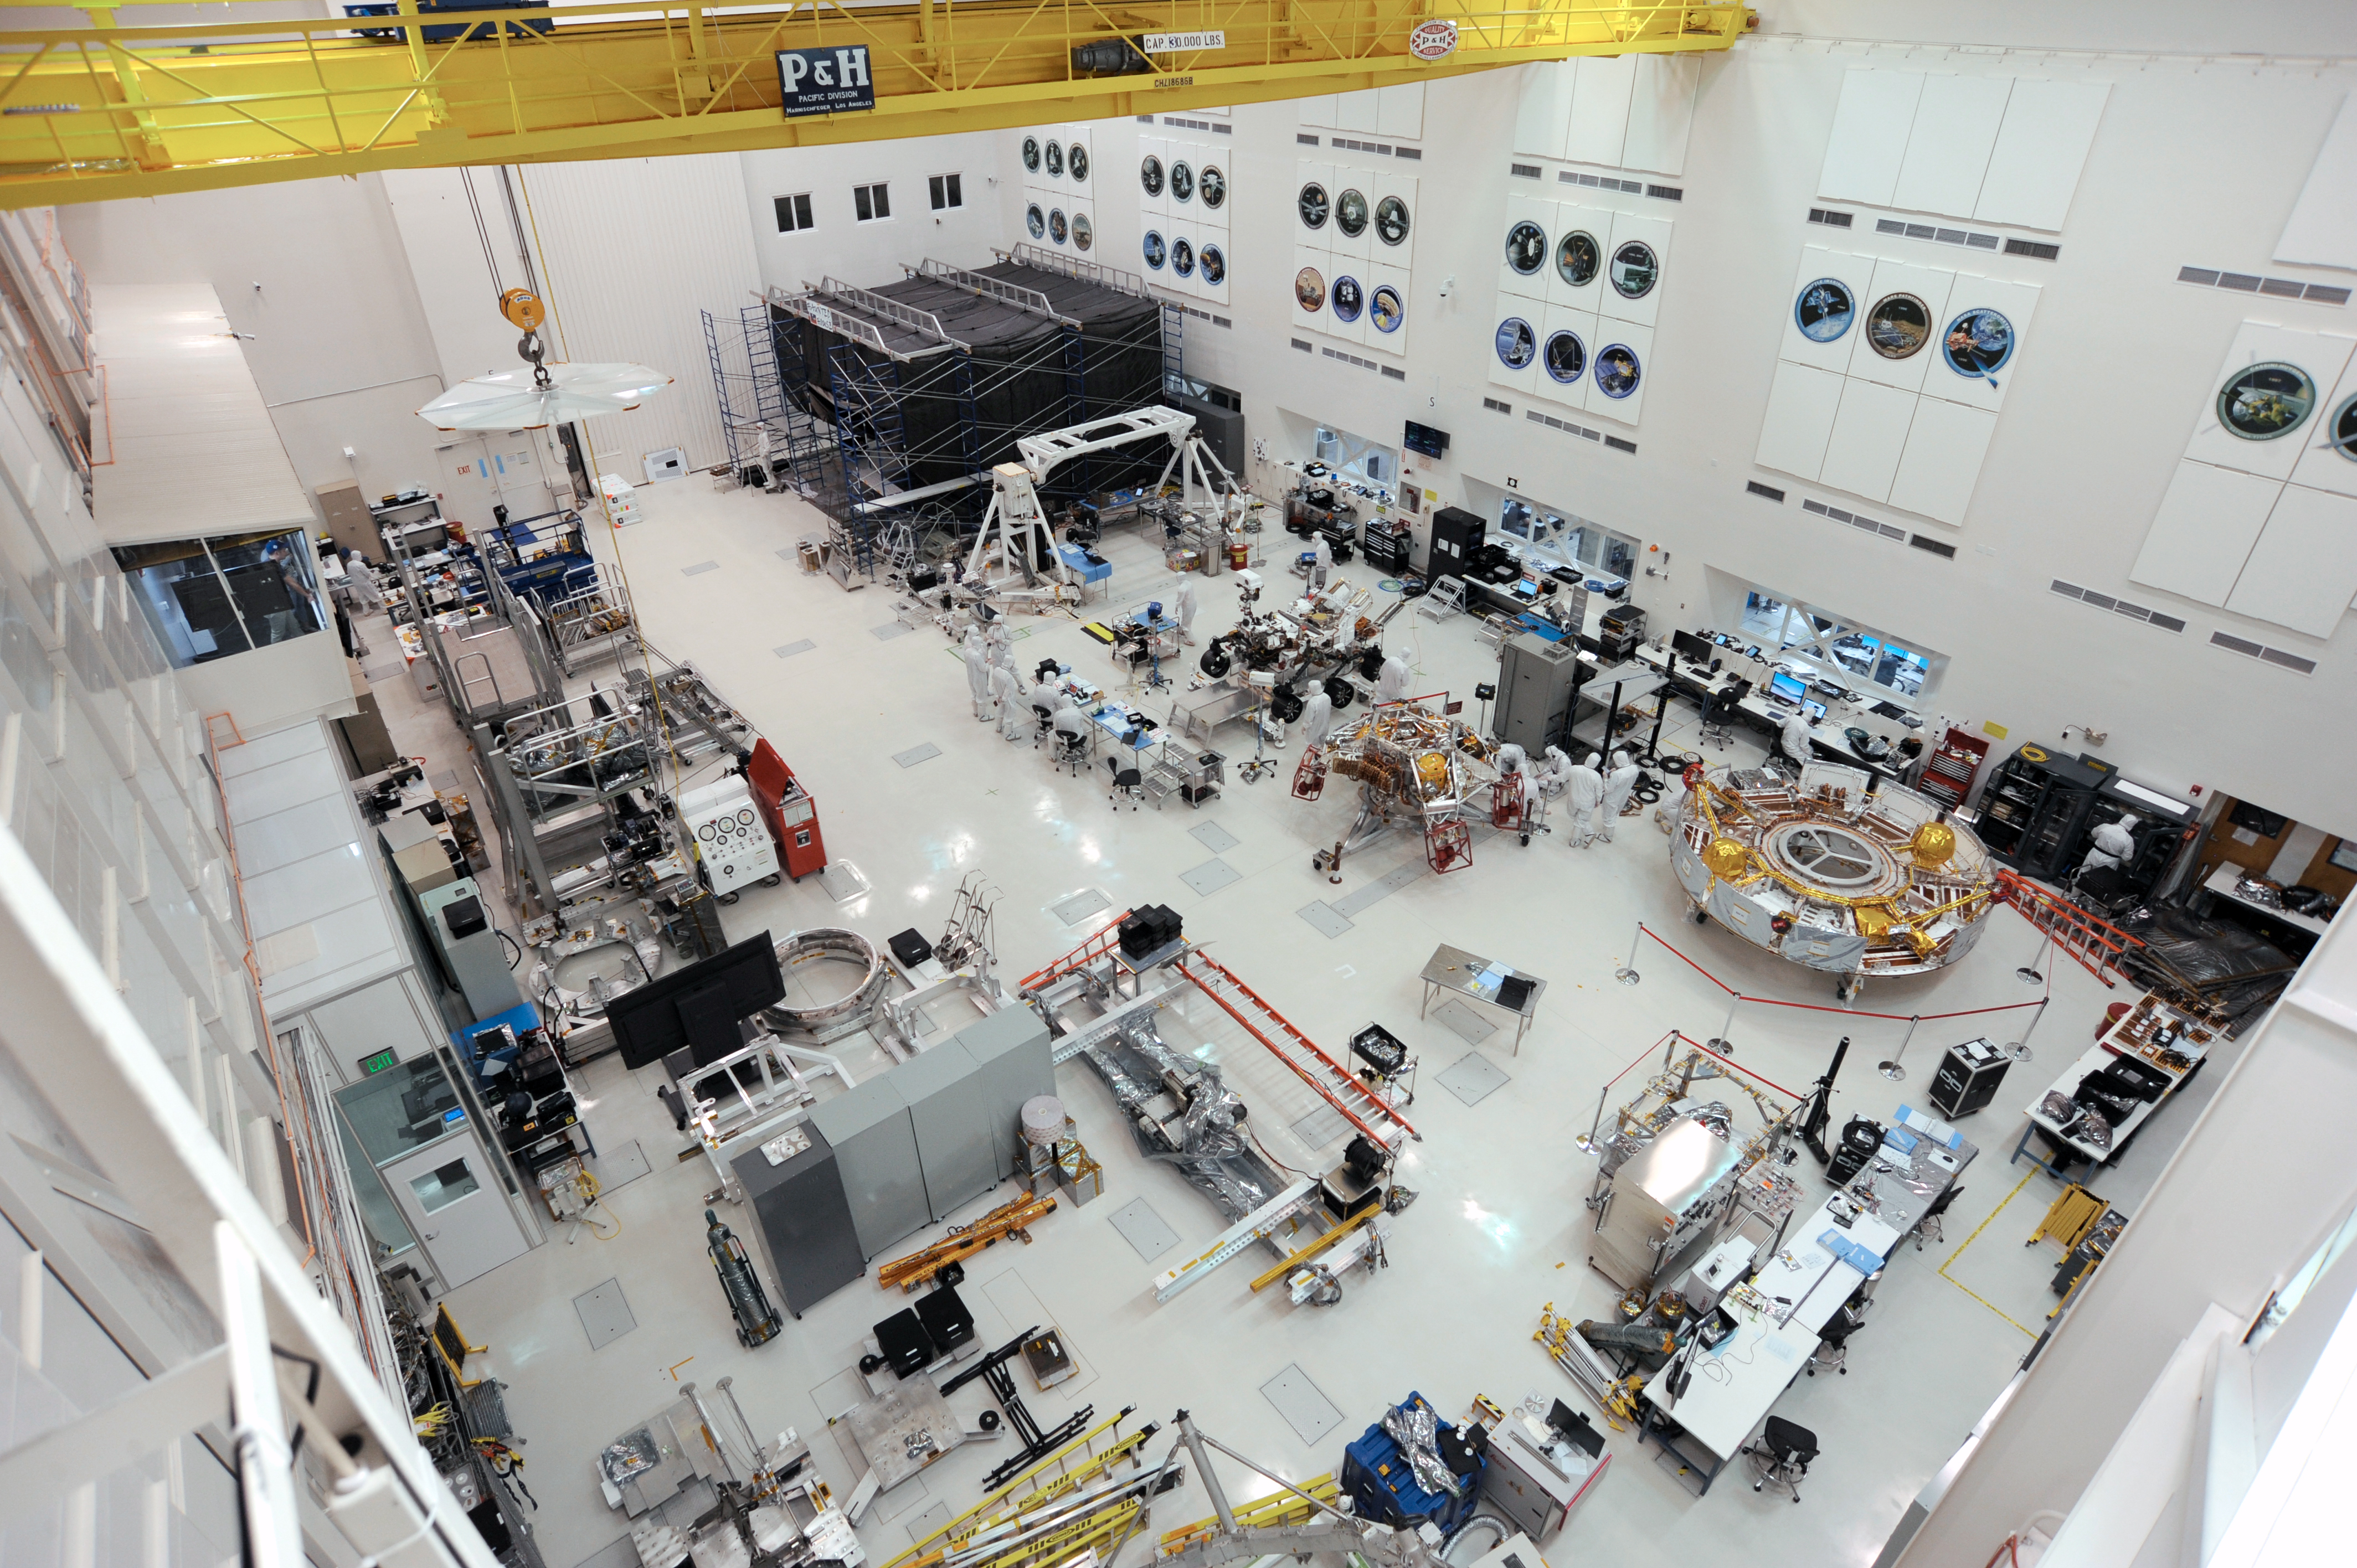 slide 4 - Mars 2020 in JPL's Spacecraft Assembly Facility